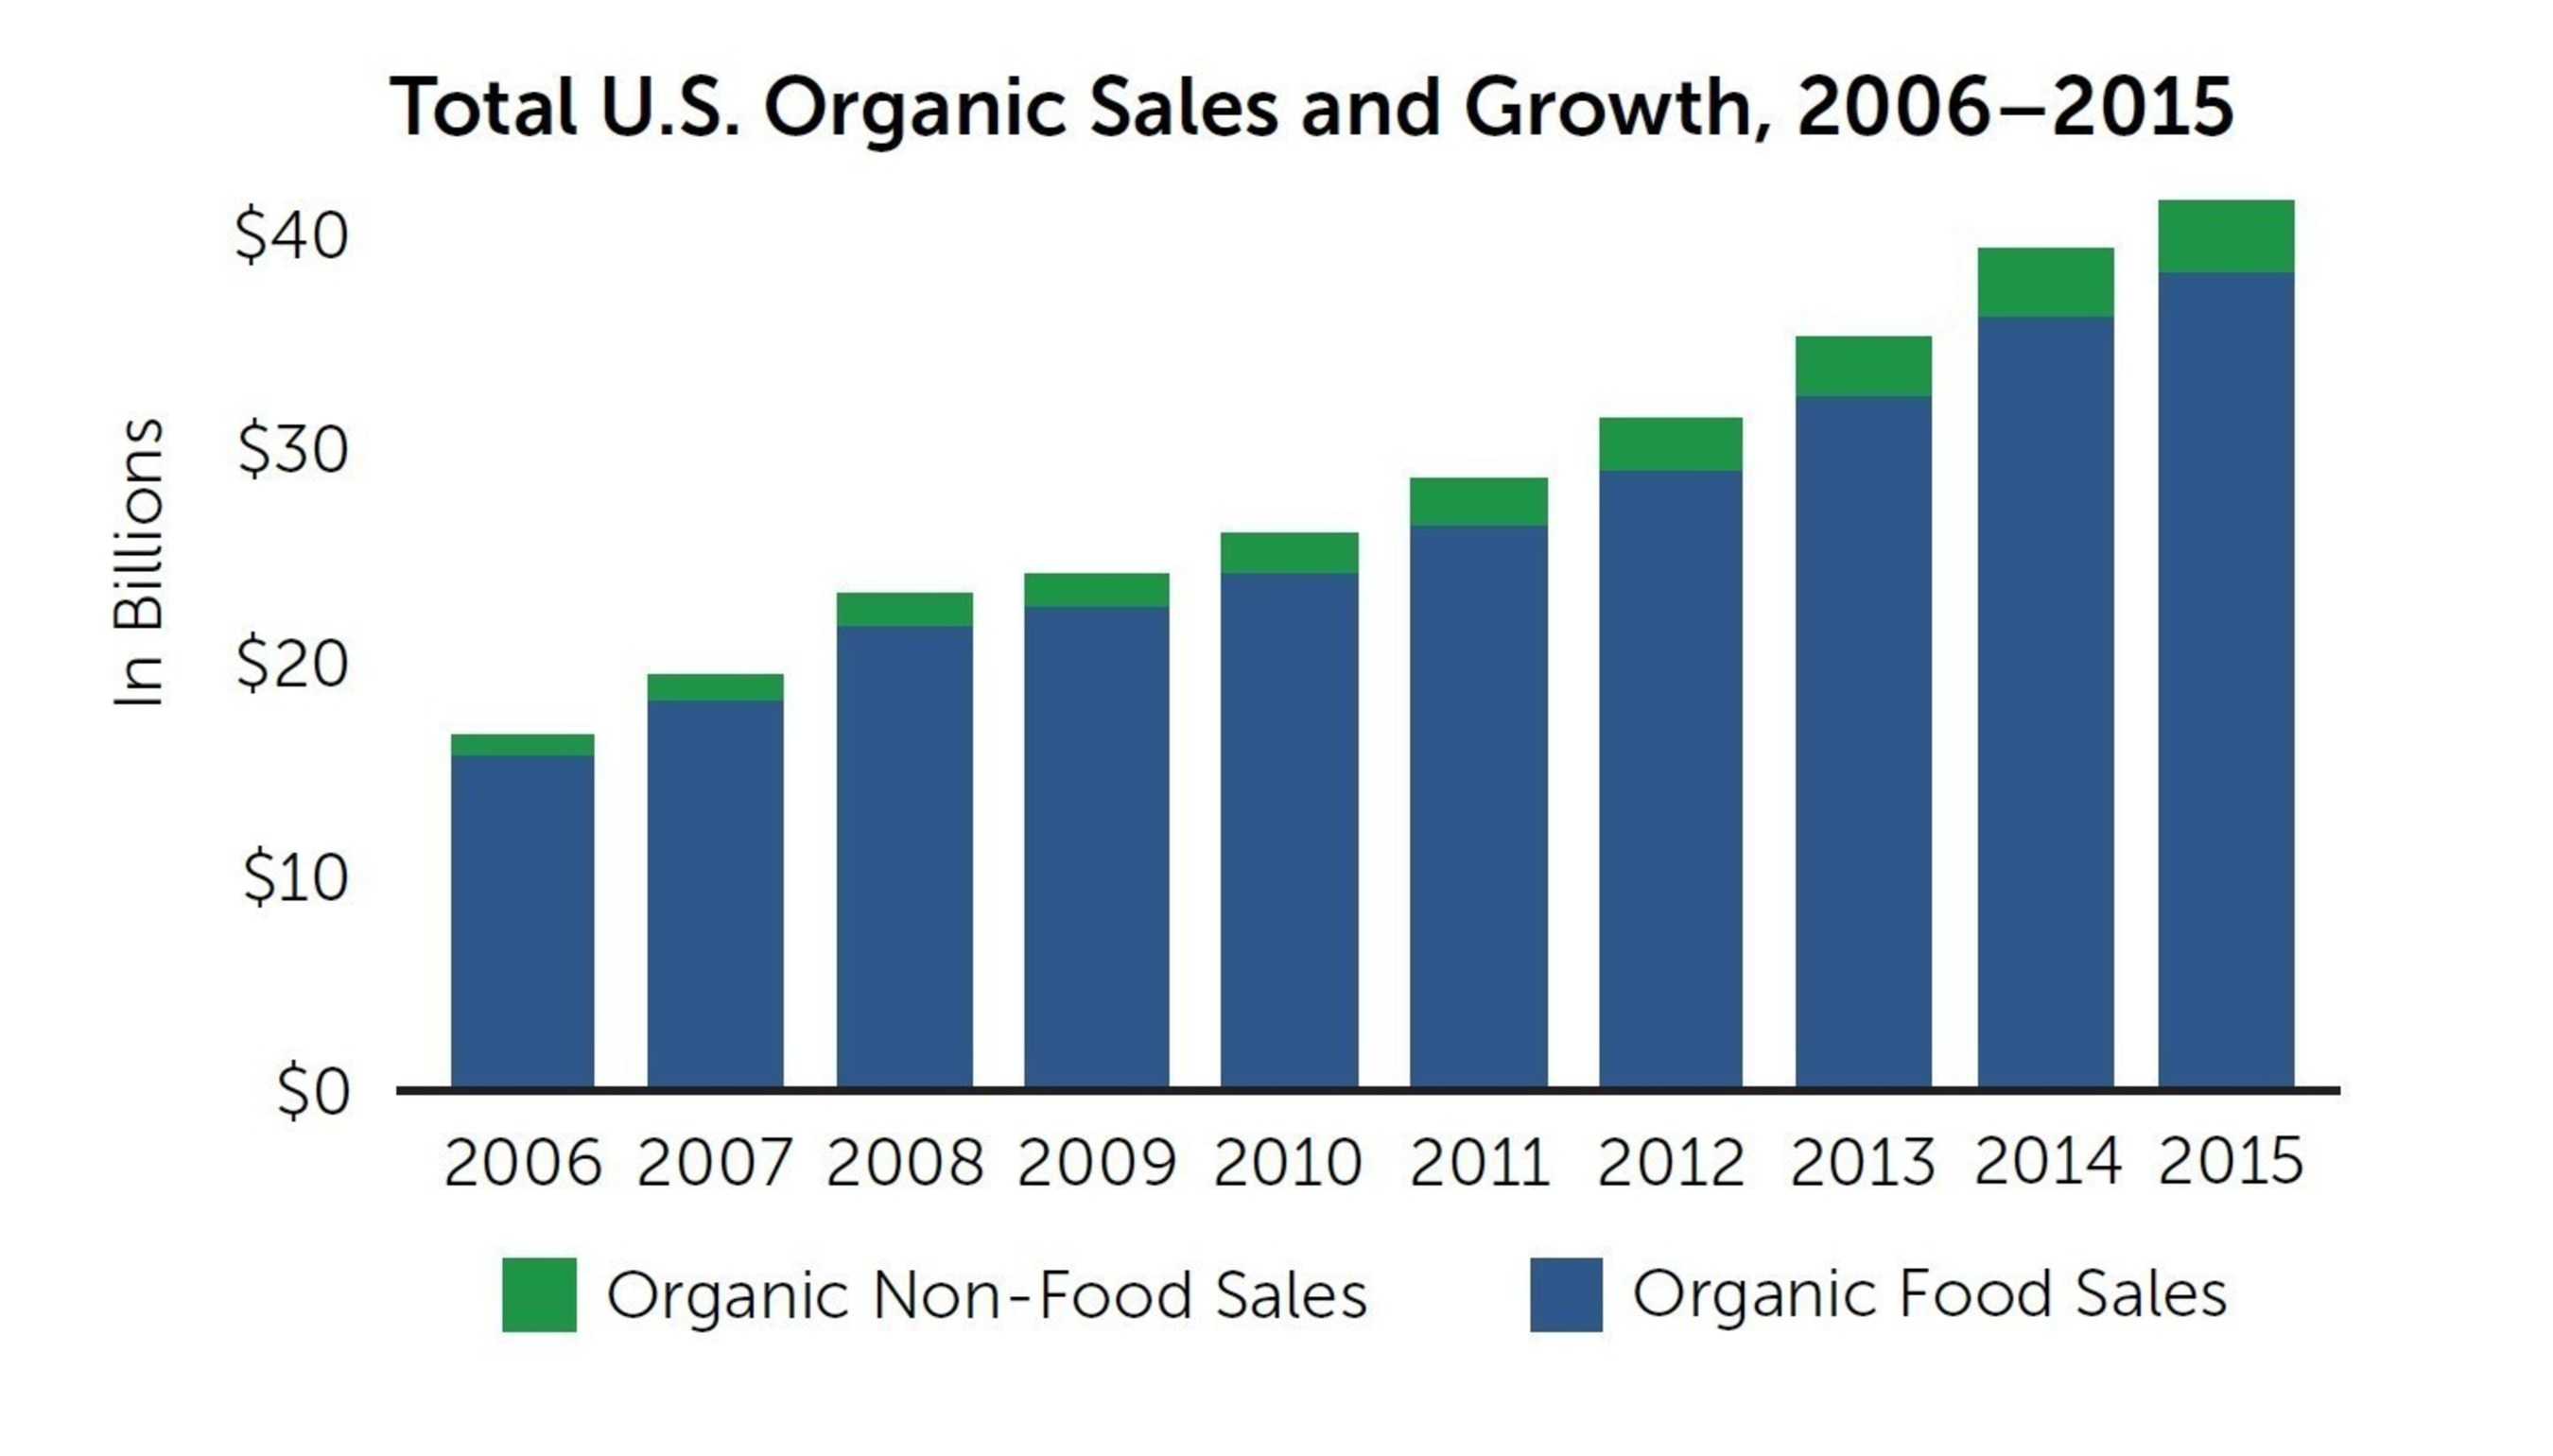 U.S. organic sales and growth over time